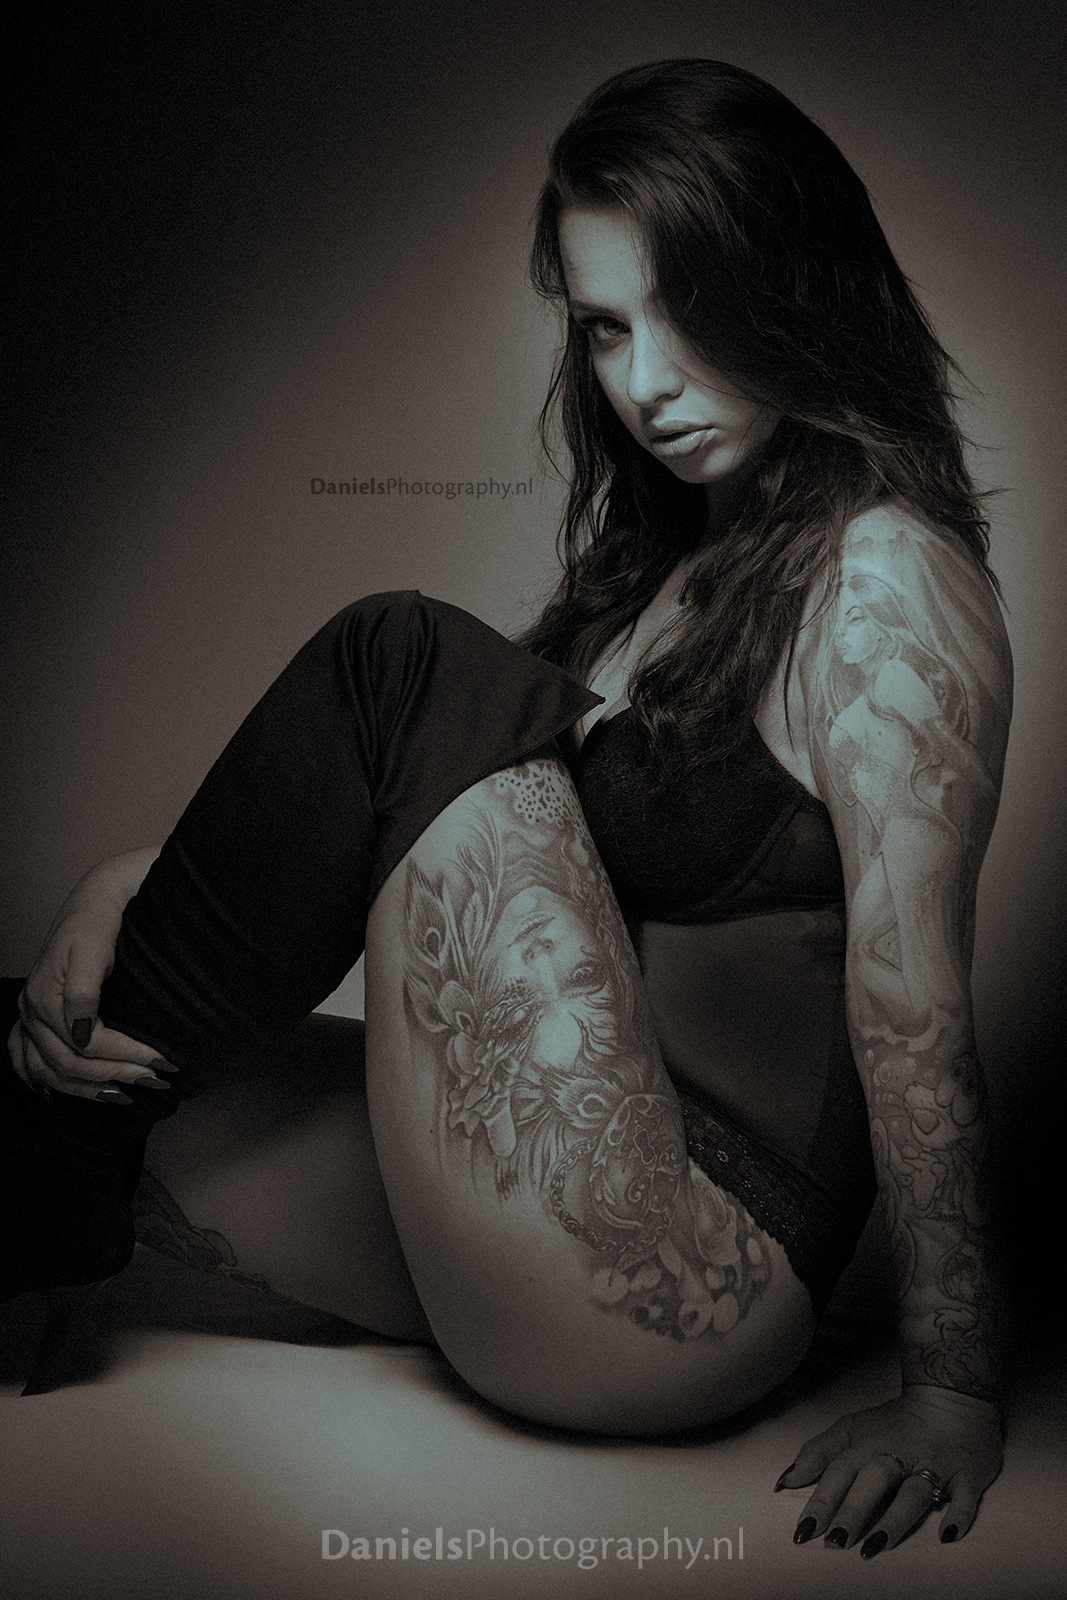 Photoshoot with Tattoo model Naomi V. by Gerard Daniels